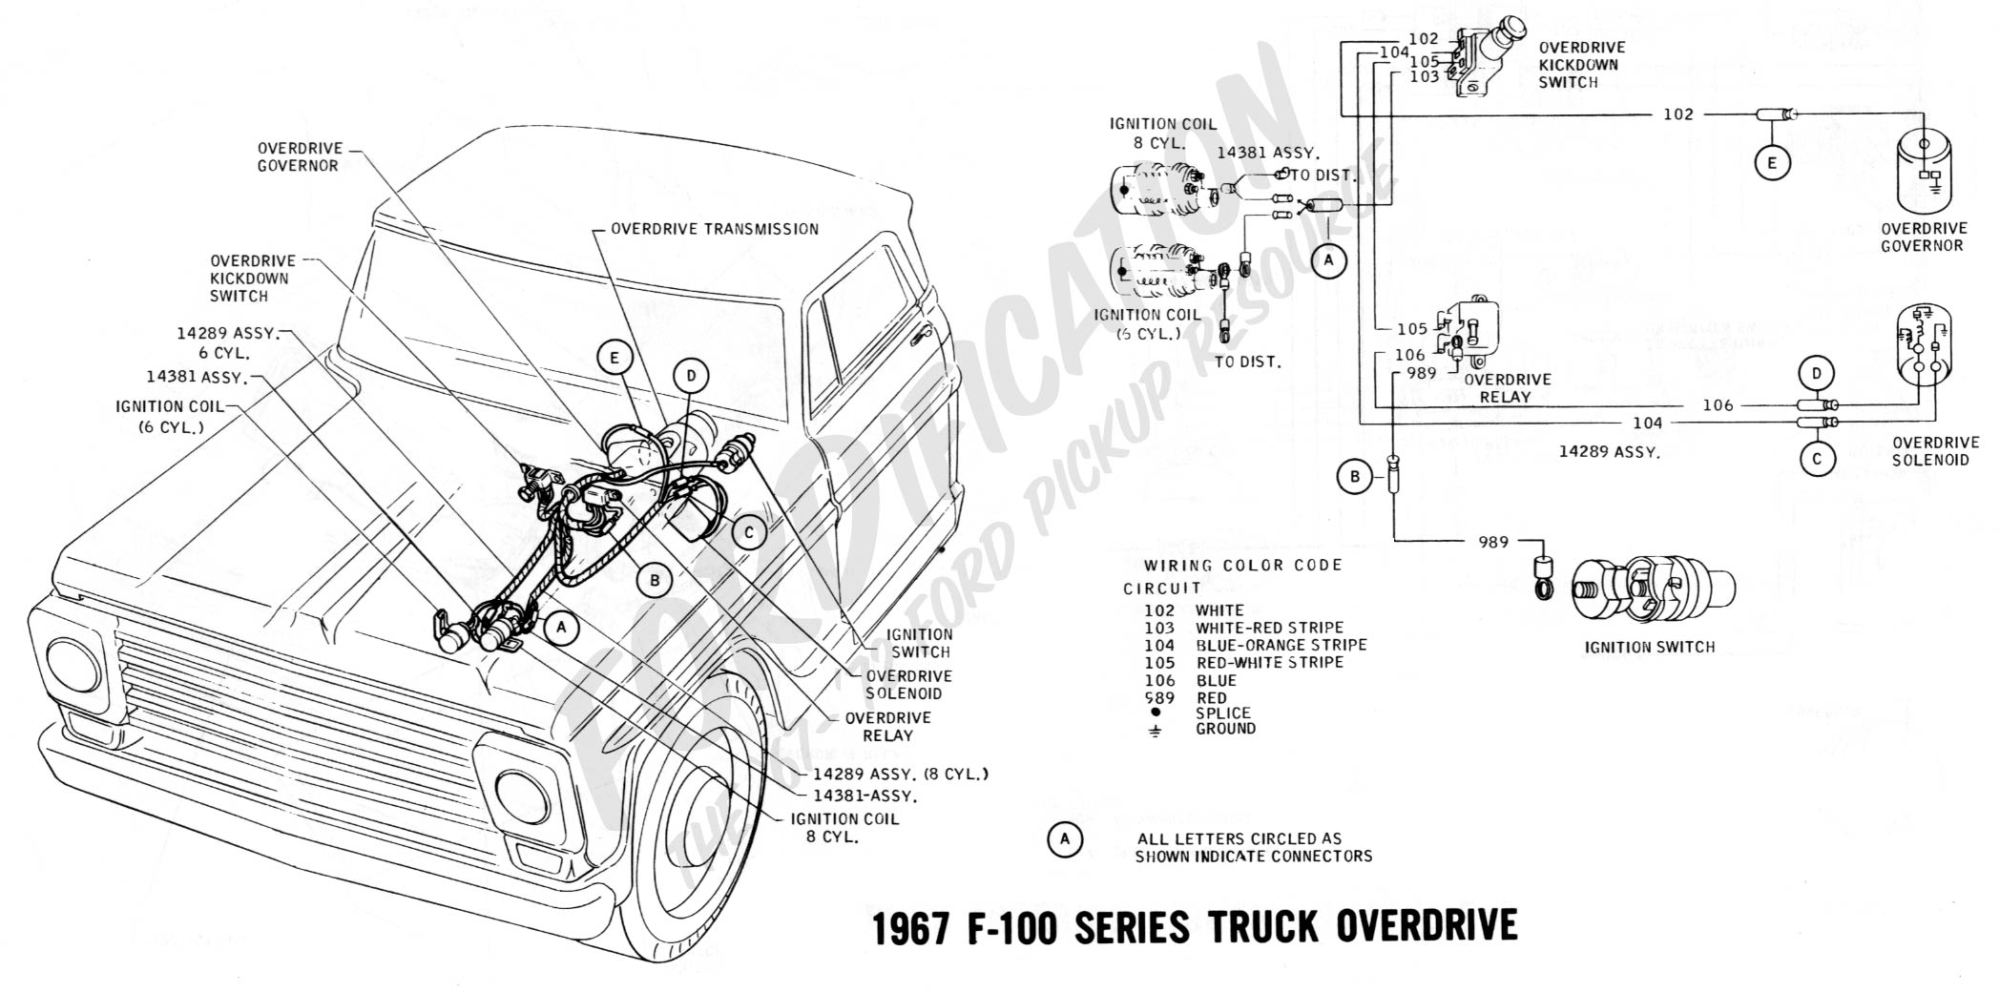 hight resolution of 1967 f 100 series overdrive 1968 wiring schematics